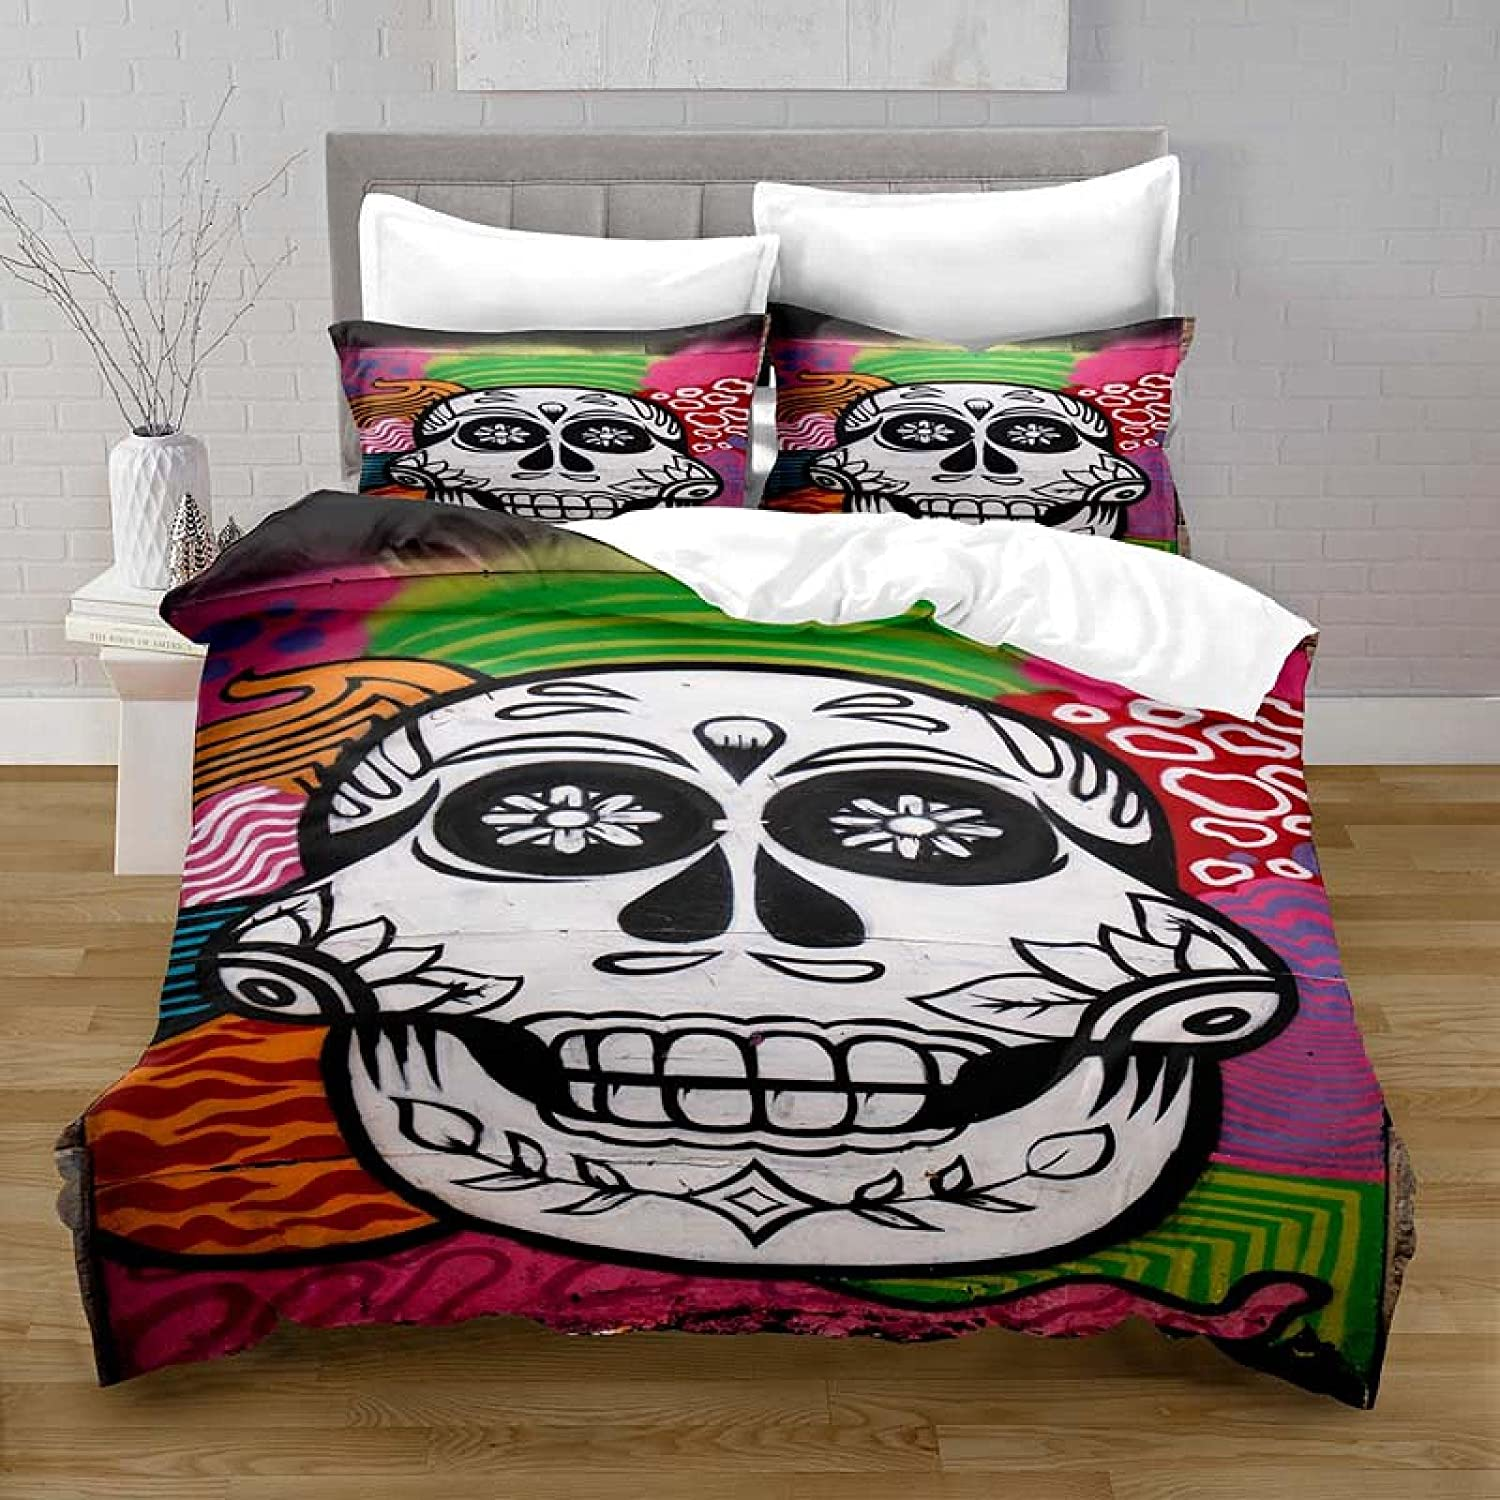 HQHM Duvet Cover King 3 Pieces 94X102 I Skull Great interest Leaf Pattern Color Chicago Mall